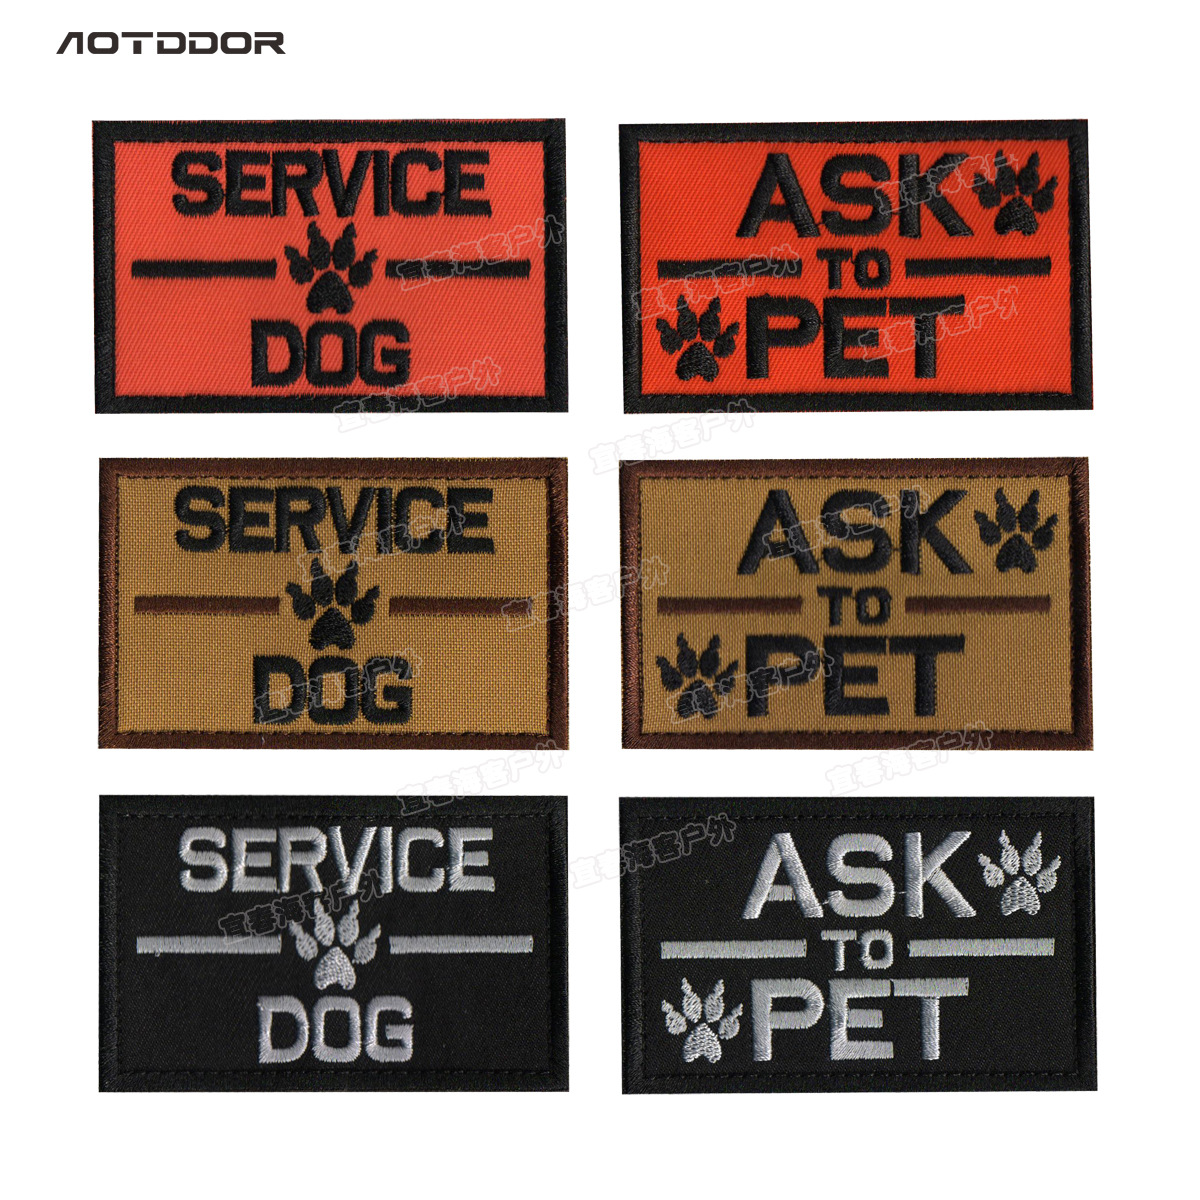 Cross Border Hot Selling Pet Backpack Chapter Sevice Dog Services Dog K9 Patch Dog Chapter Embroidered Velcro